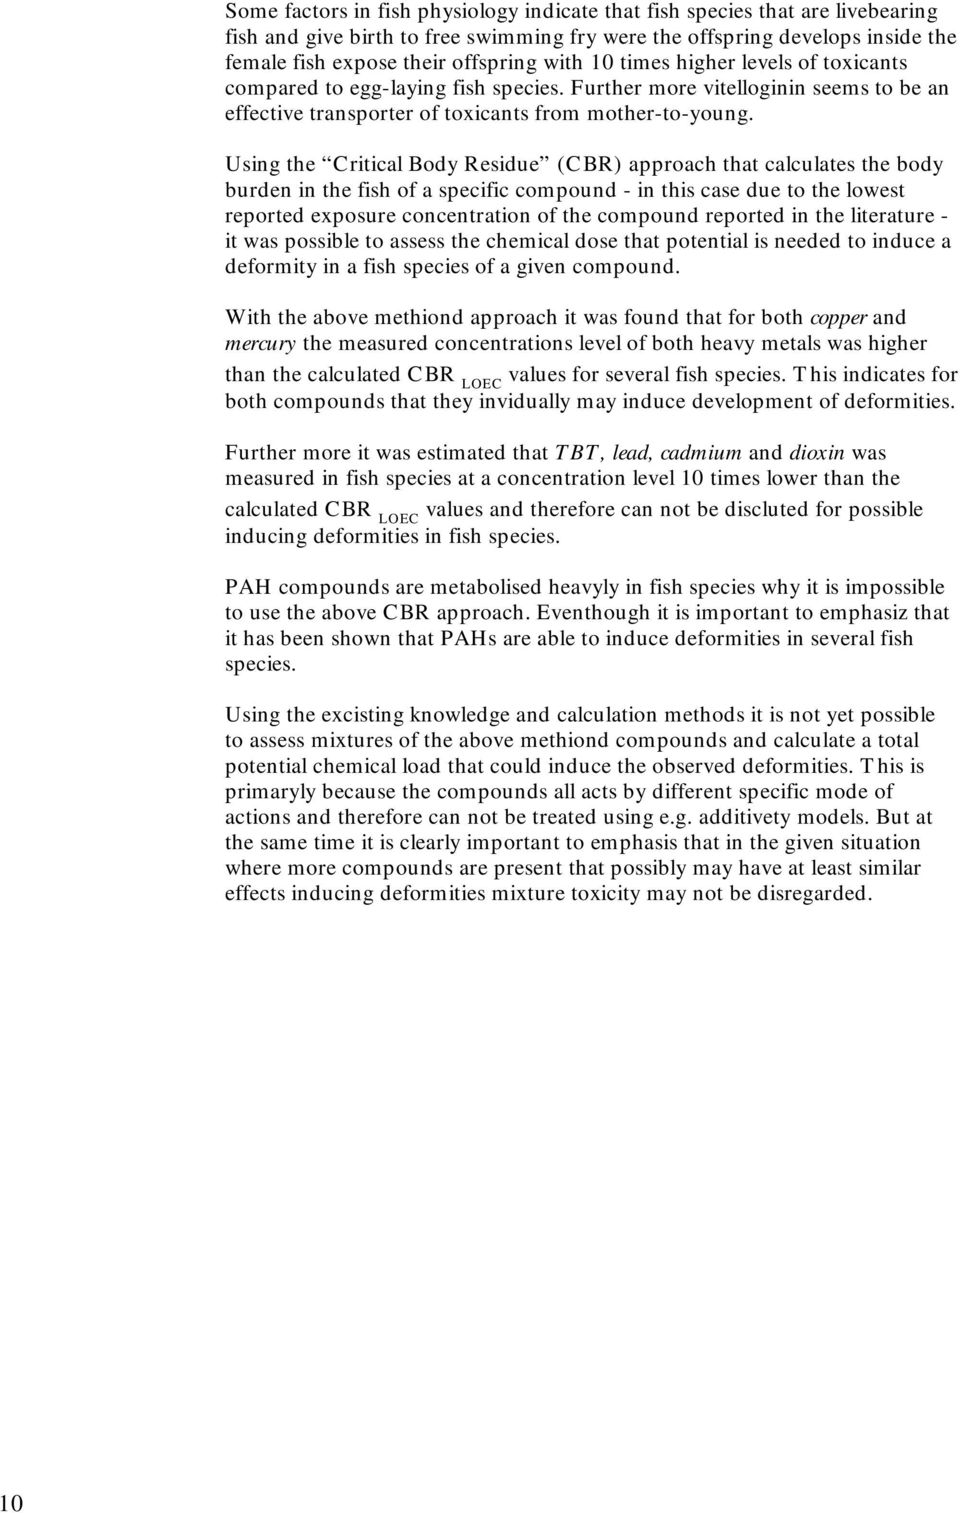 Using the Critical Body Residue (CBR) approach that calculates the body burden in the fish of a specific compound - in this case due to the lowest reported exposure concentration of the compound